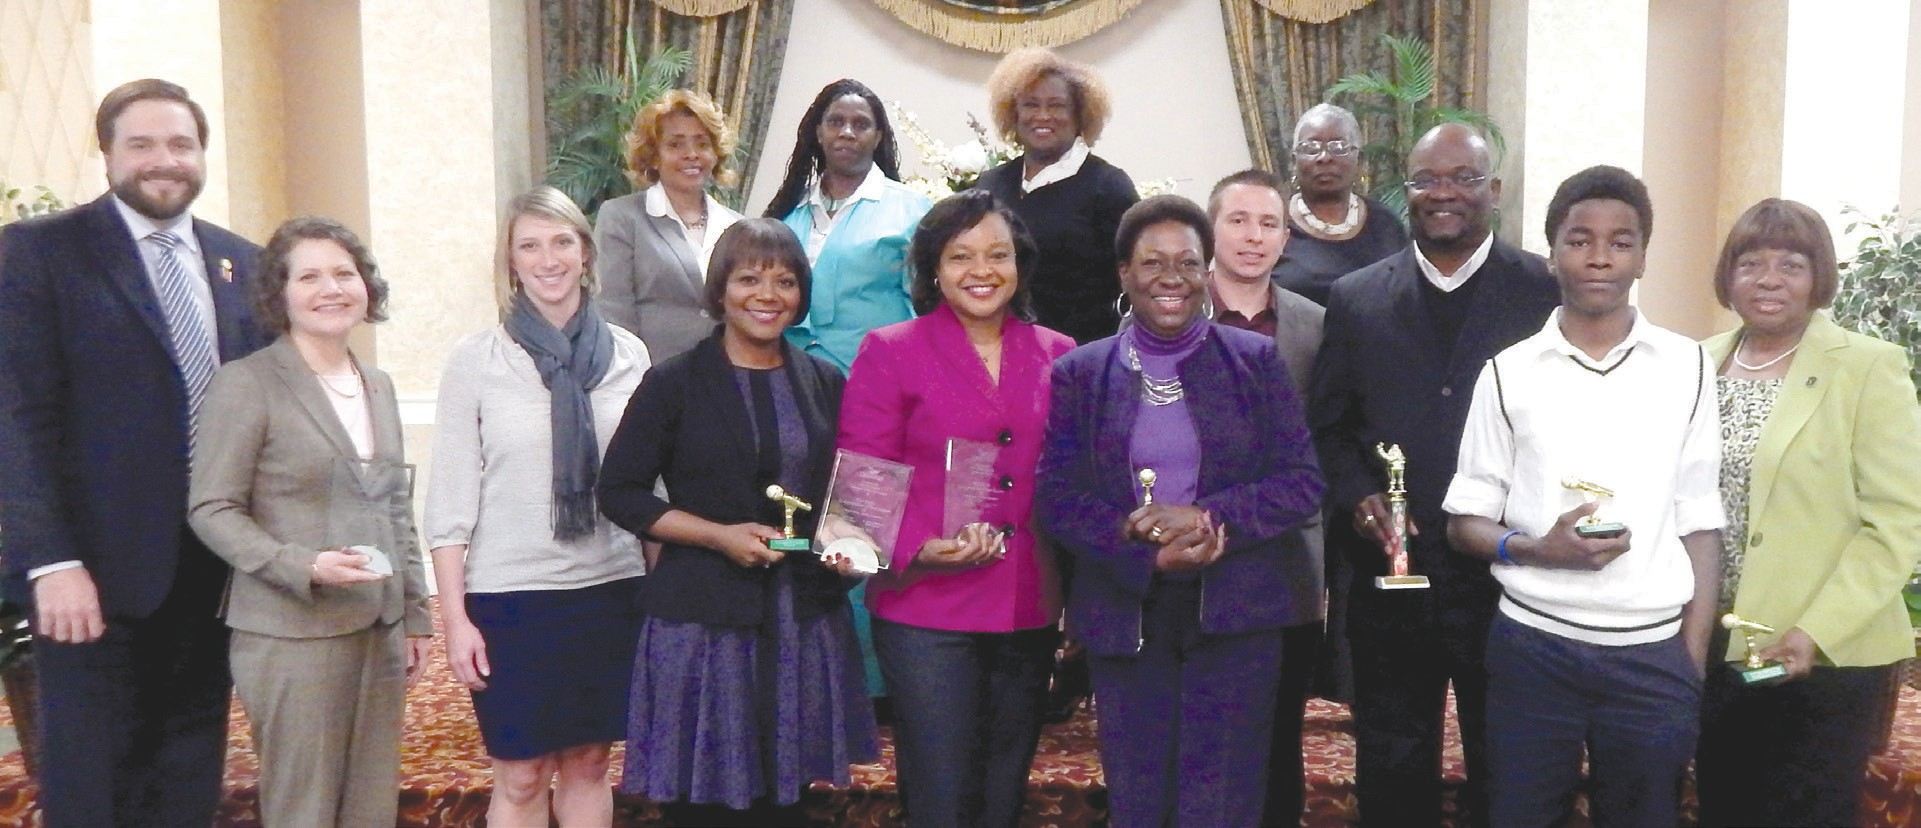 Greenbriar 2015 Award Winning Volunteers and Employees of Greenbriar Children's Center